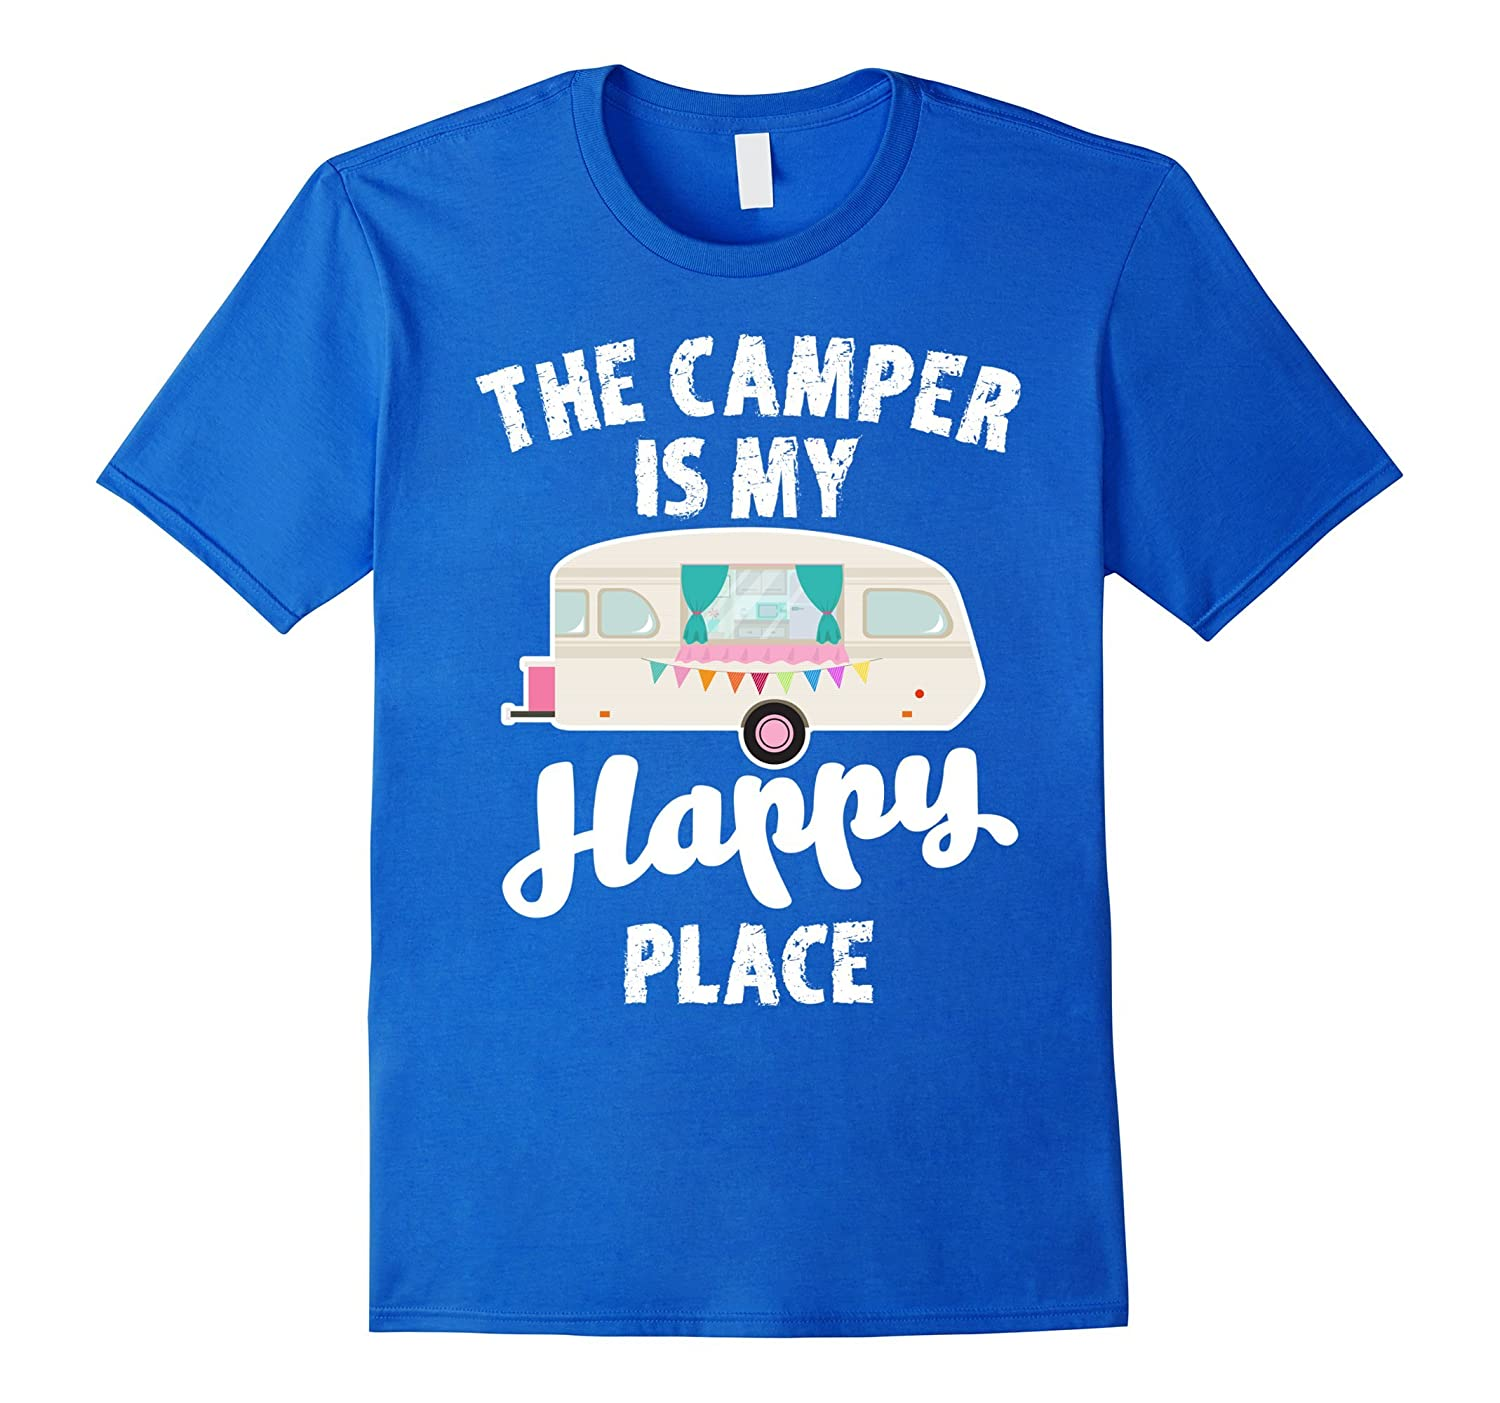 The Camper Is My Happy Place Shirt: Funny Camping Quote Gift-TH